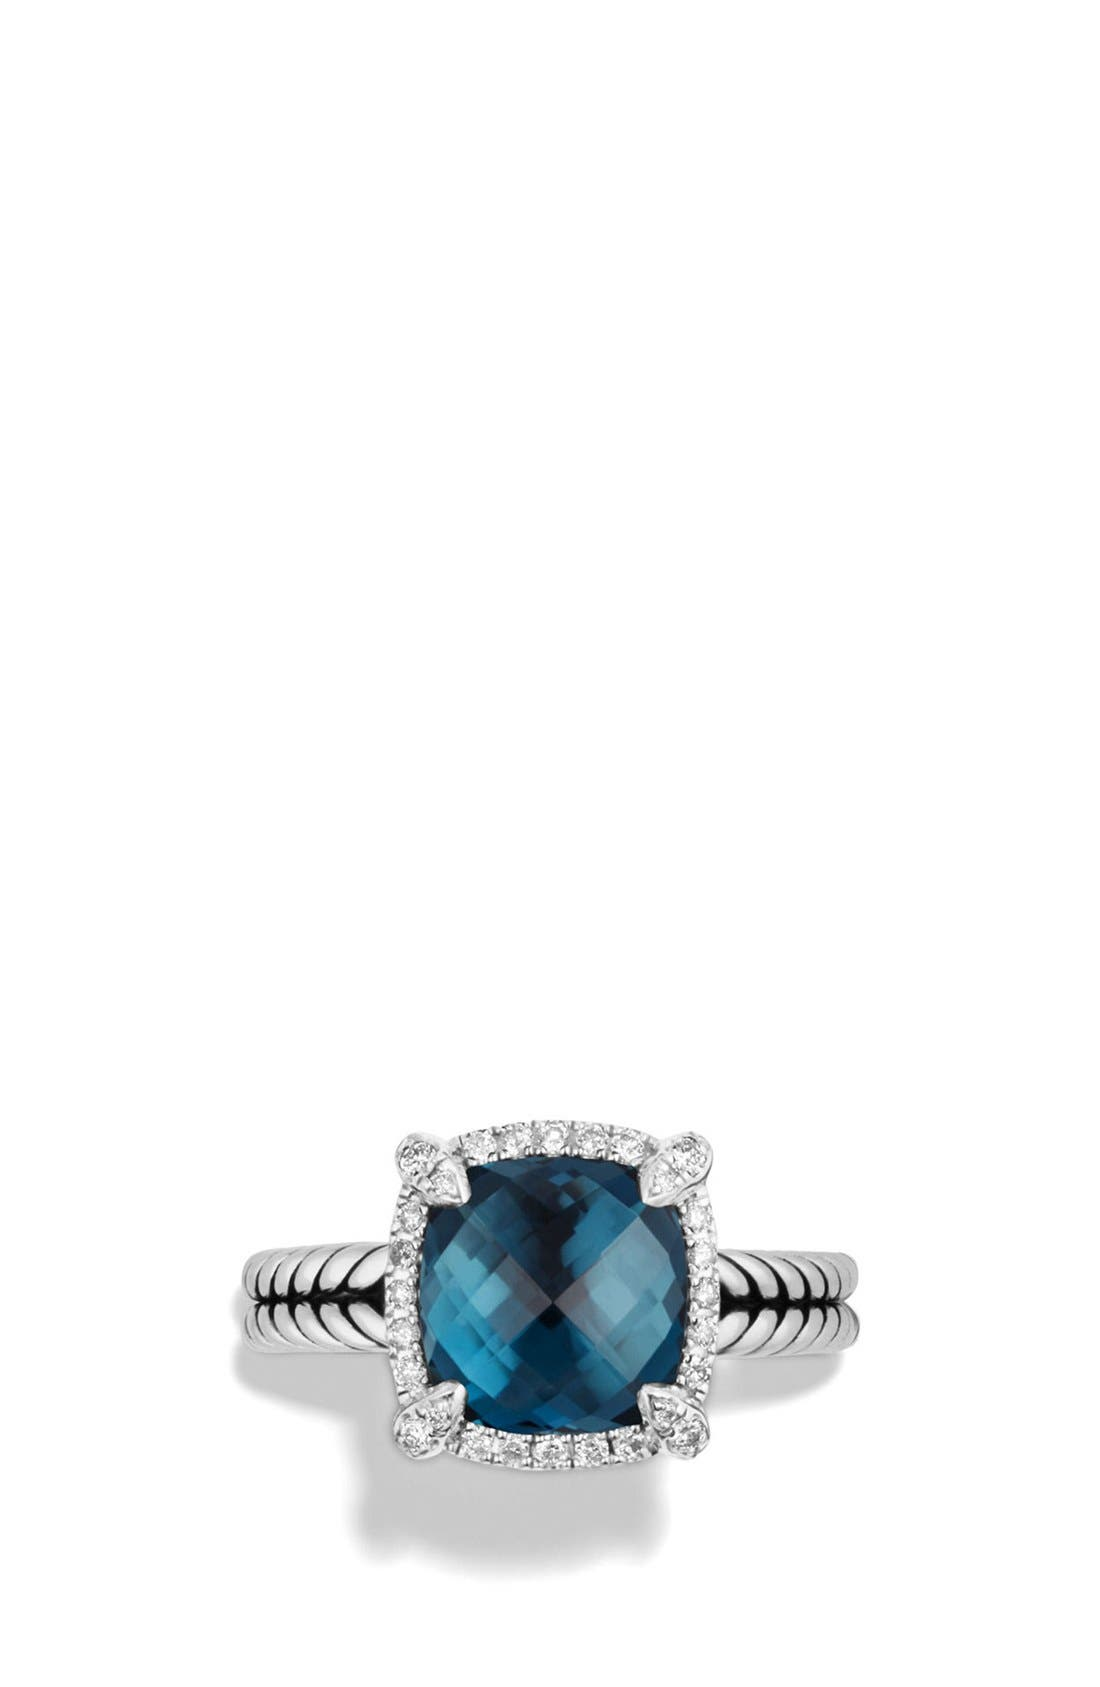 'Châtelaine' Small Pavé Bezel Ring with Diamonds,                             Alternate thumbnail 3, color,                             Blue Topaz